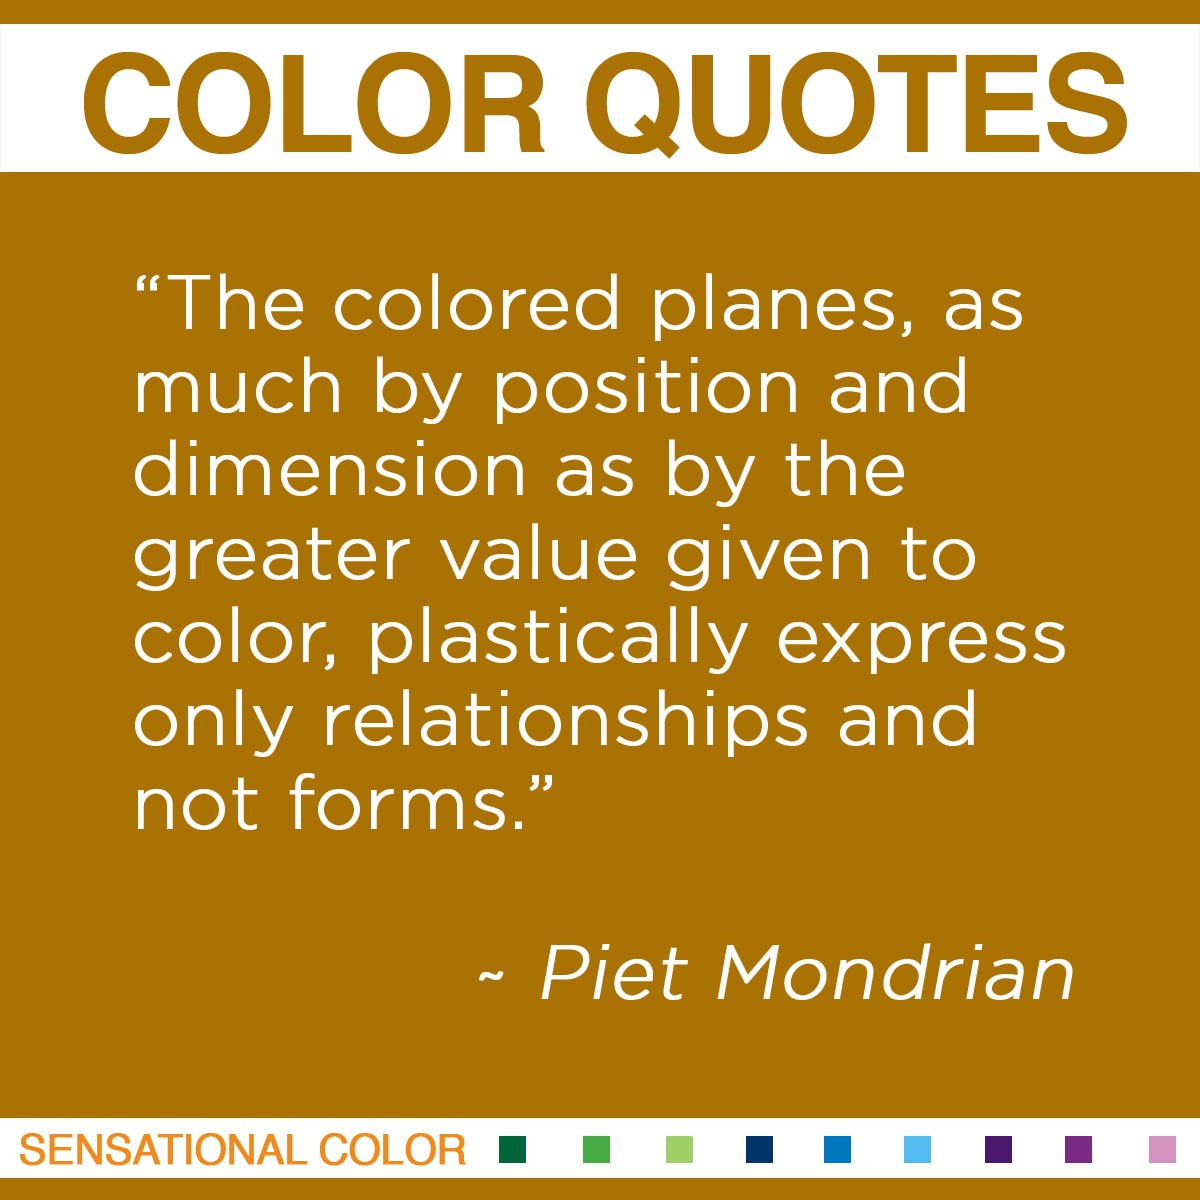 """The colored planes, as much by position and dimension as by the greater value given to color, plastically express only relationships and not forms."" - Piet Mondrian"